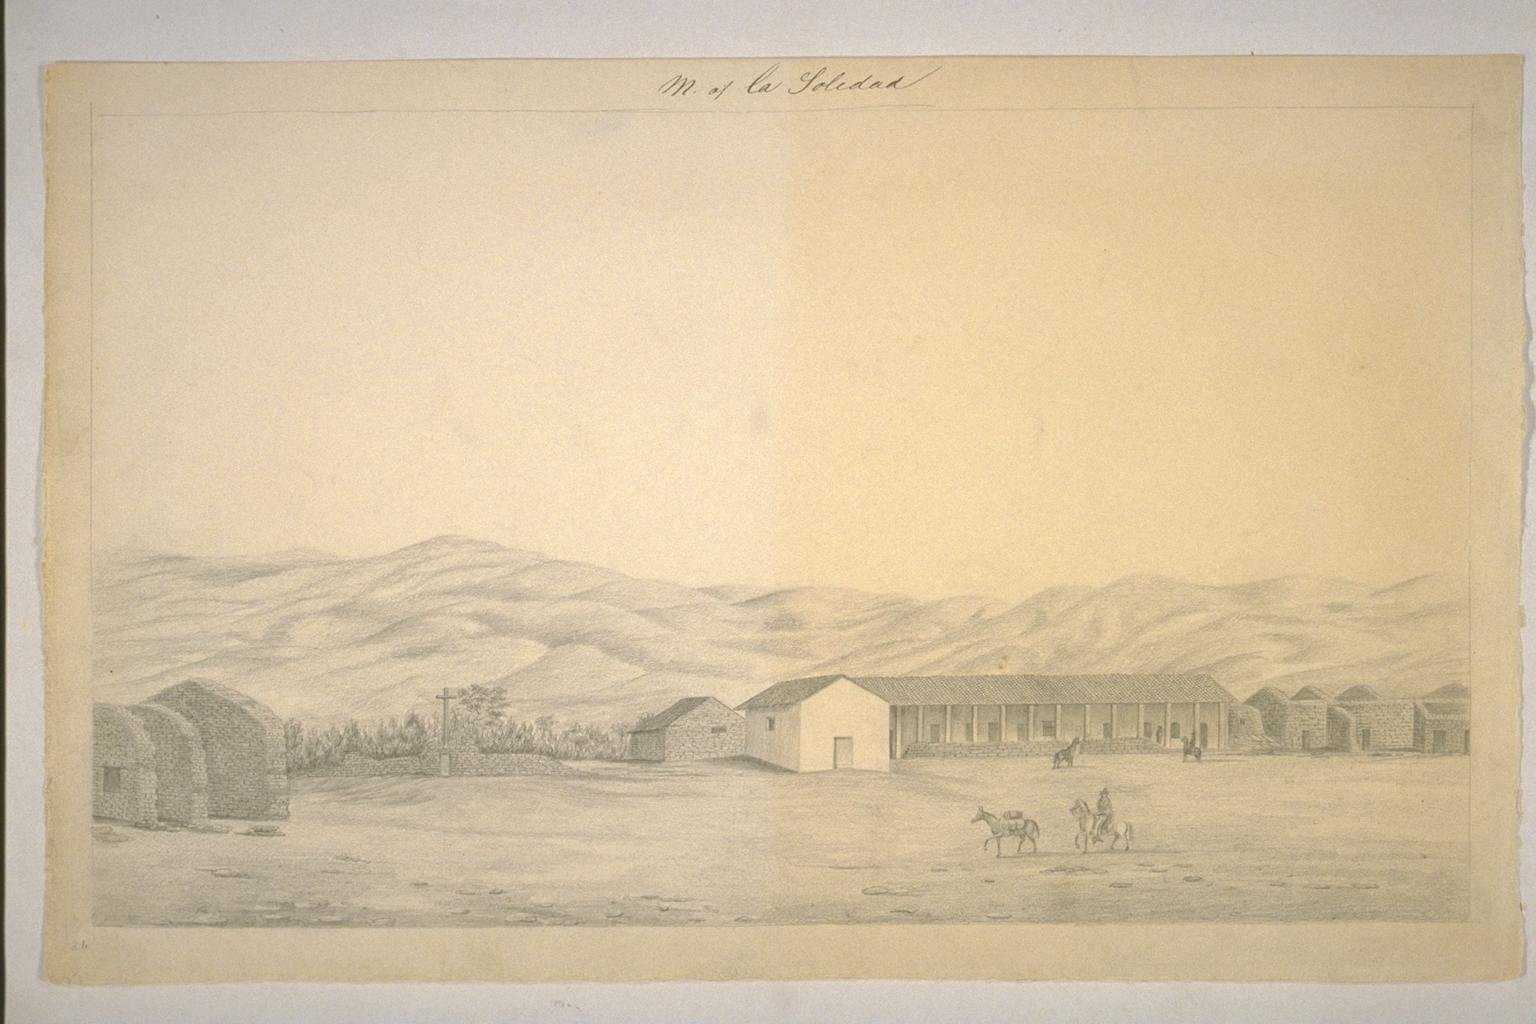 Henry Miller's sketch of Soledad in 1856. His description of the mission's decrepitude aptly summarizes it's condition for much of the next century, before it was restored with funds from the Native Daughters of the Golden West in thr 1950s.